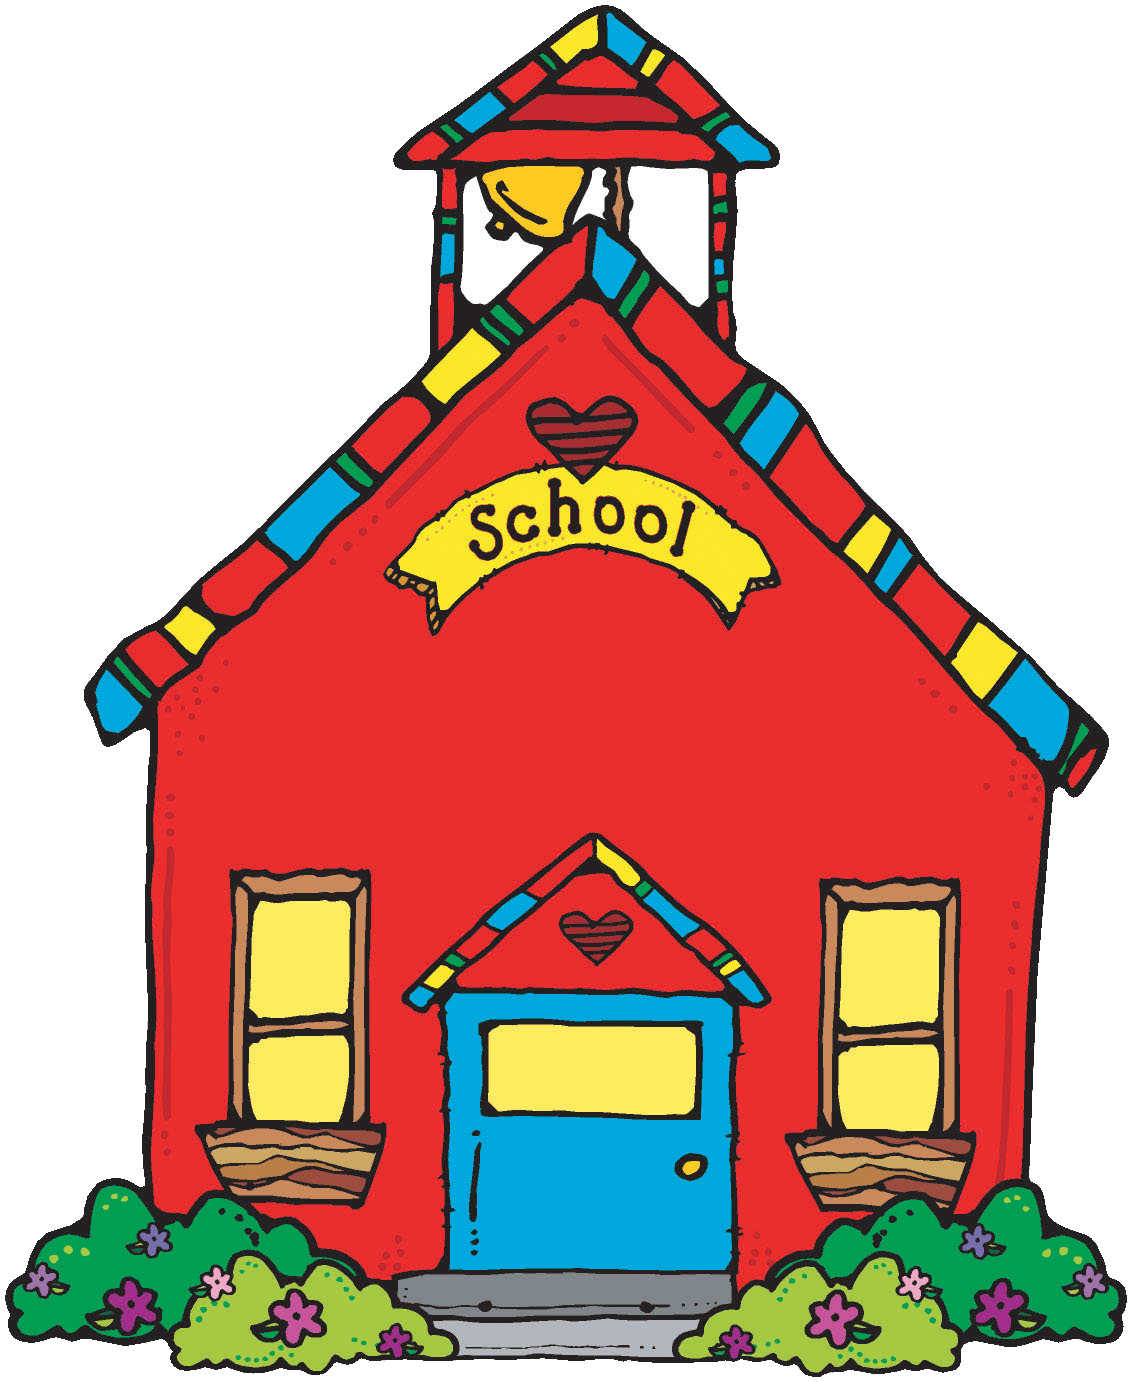 Svhool clipart picture stock High School Www Schools Clipart Collection Clip Art Last ... picture stock